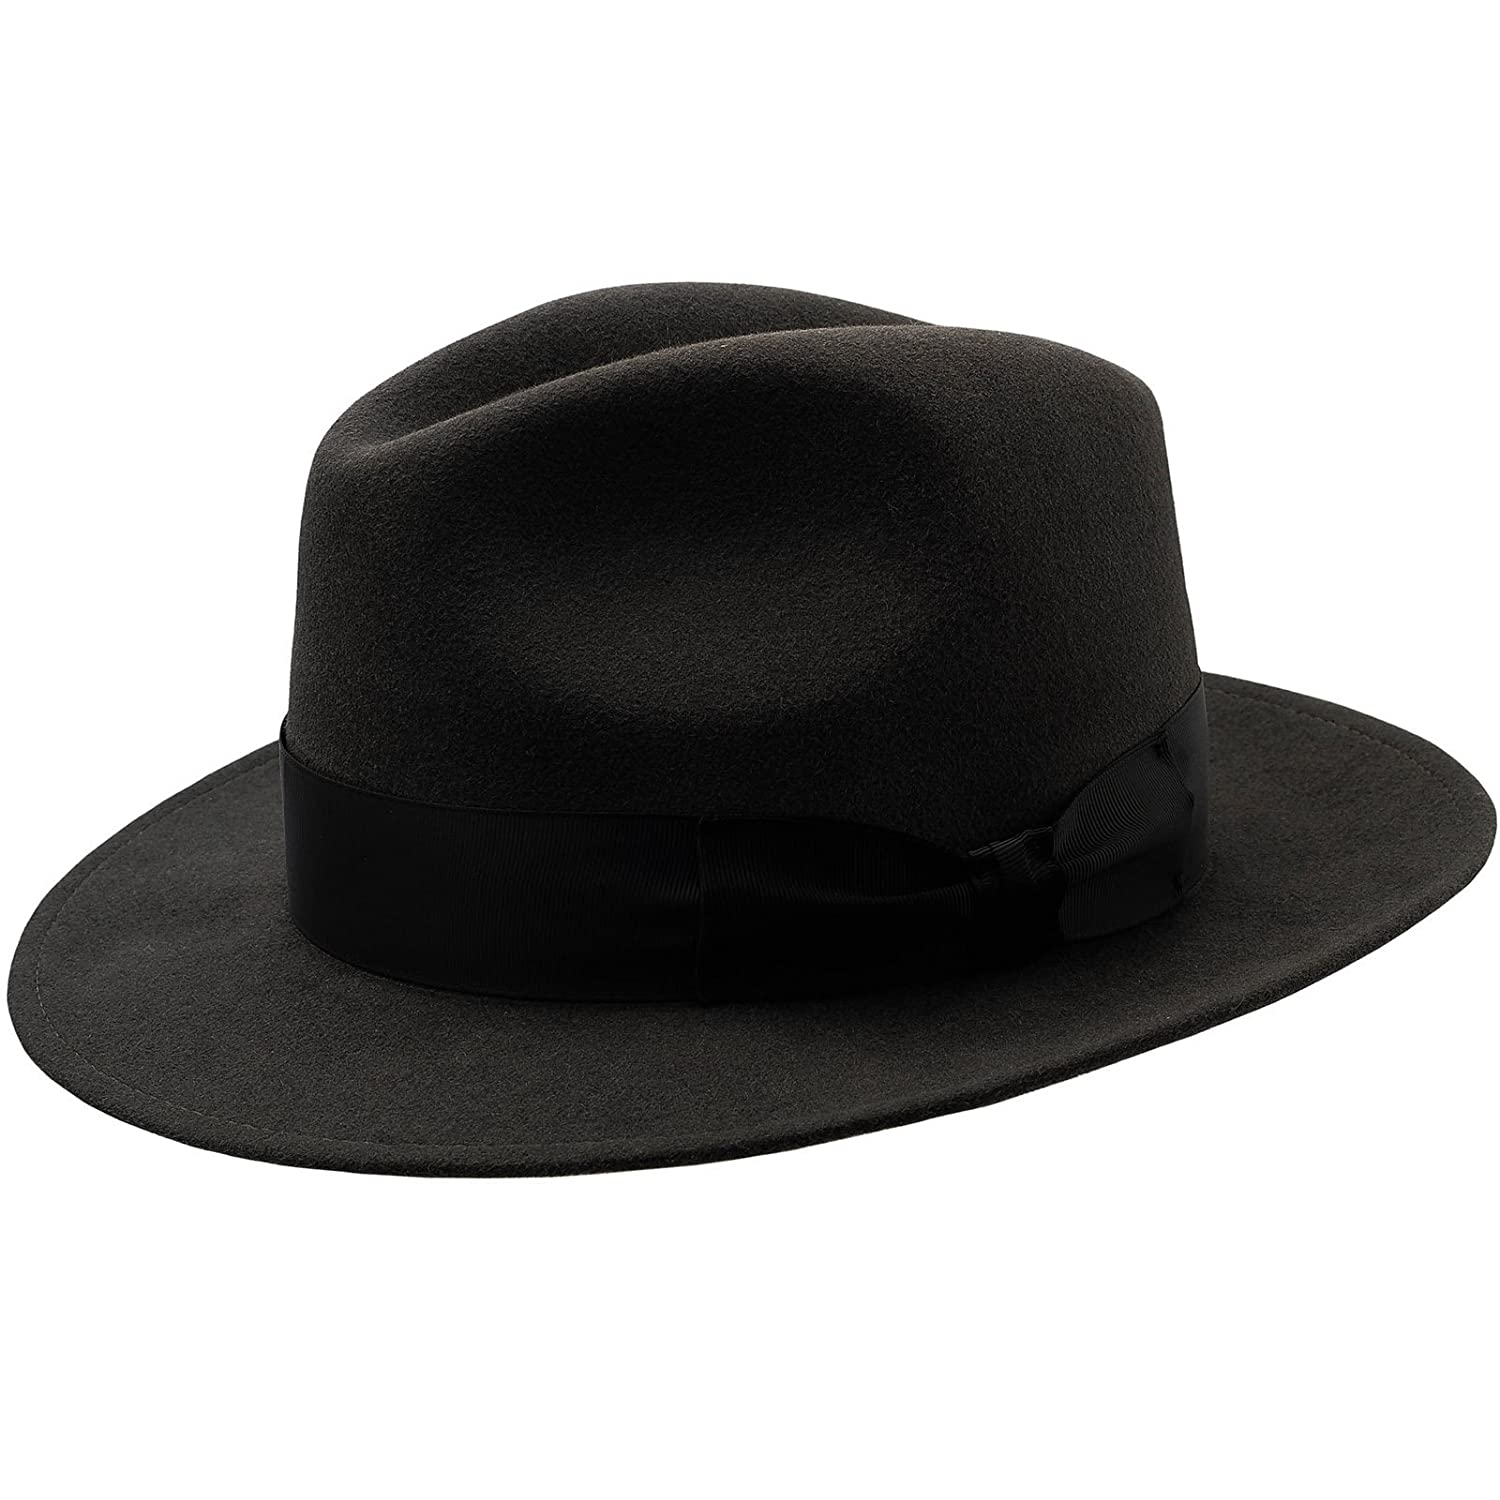 Sterkowski Rabbit Fur Felt Classic Vintage Fedora Hat at Amazon Men s  Clothing store  b947a66d00f